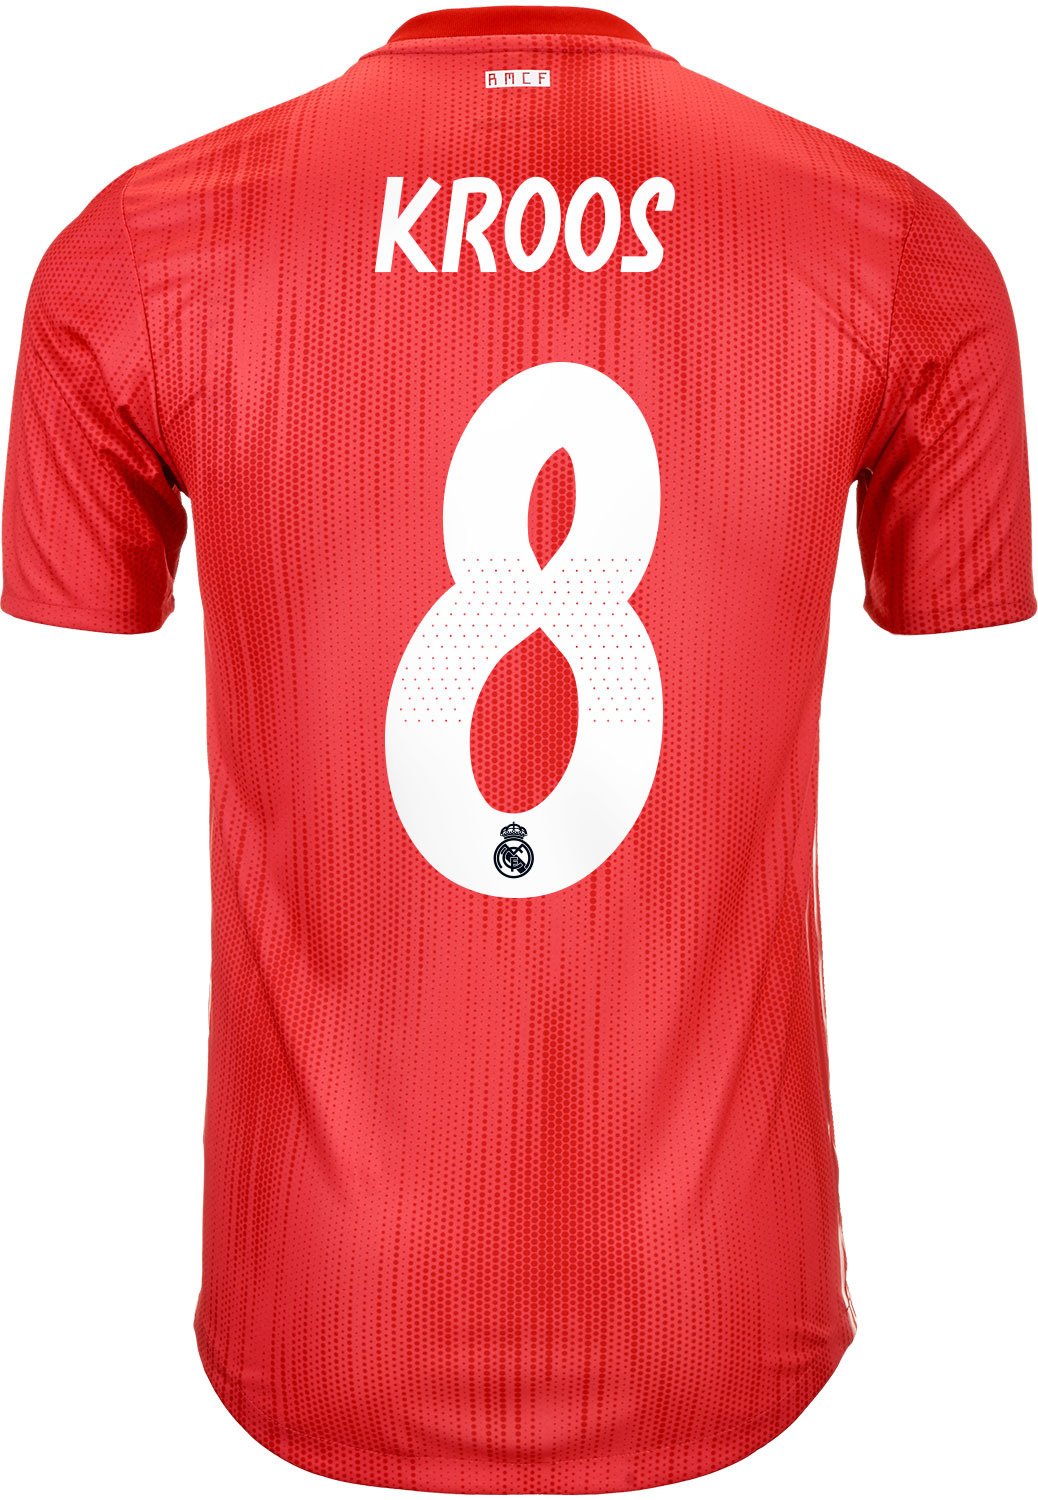 lowest price 5a51e 0c1e2 2018/19 adidas Toni Kroos Real Madrid Authentic 3rd Jersey ...